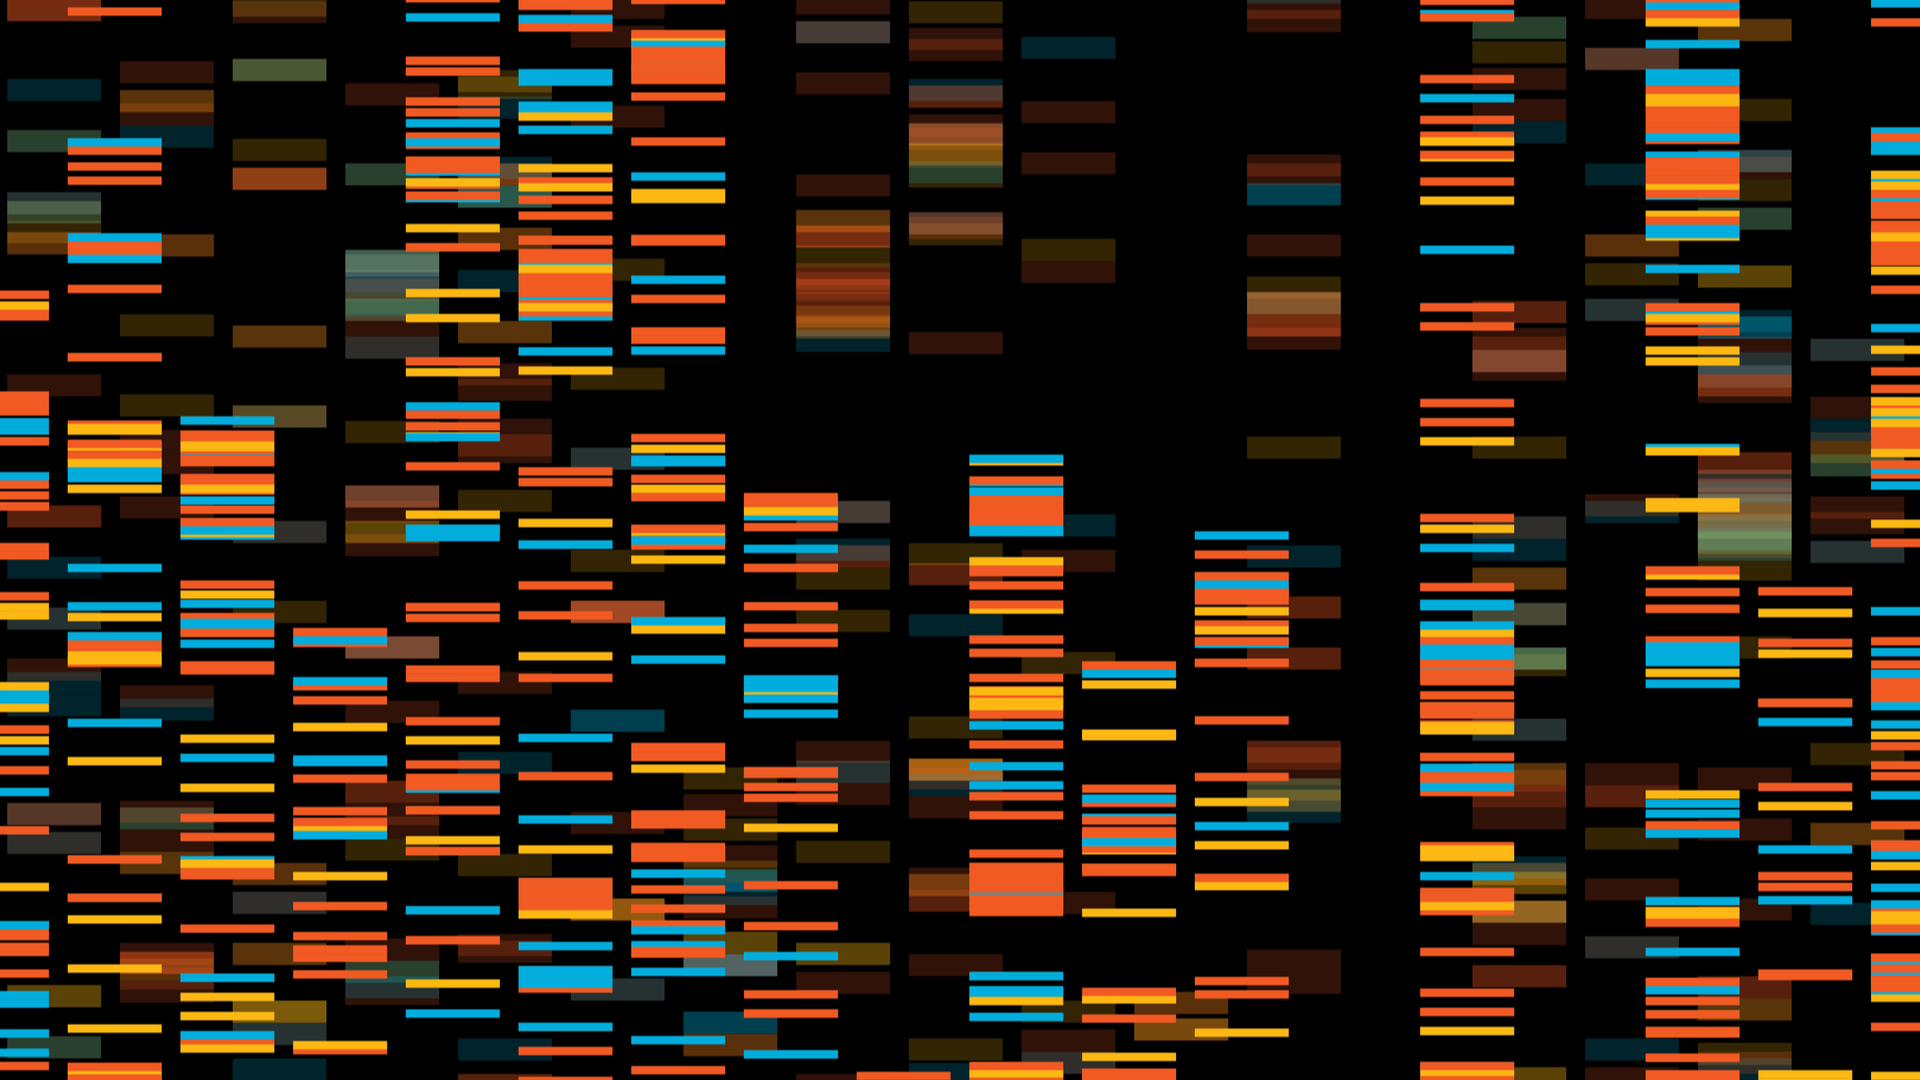 If You Ever Used Promethease, Your DNA Data Might Be On MyHeritage Now